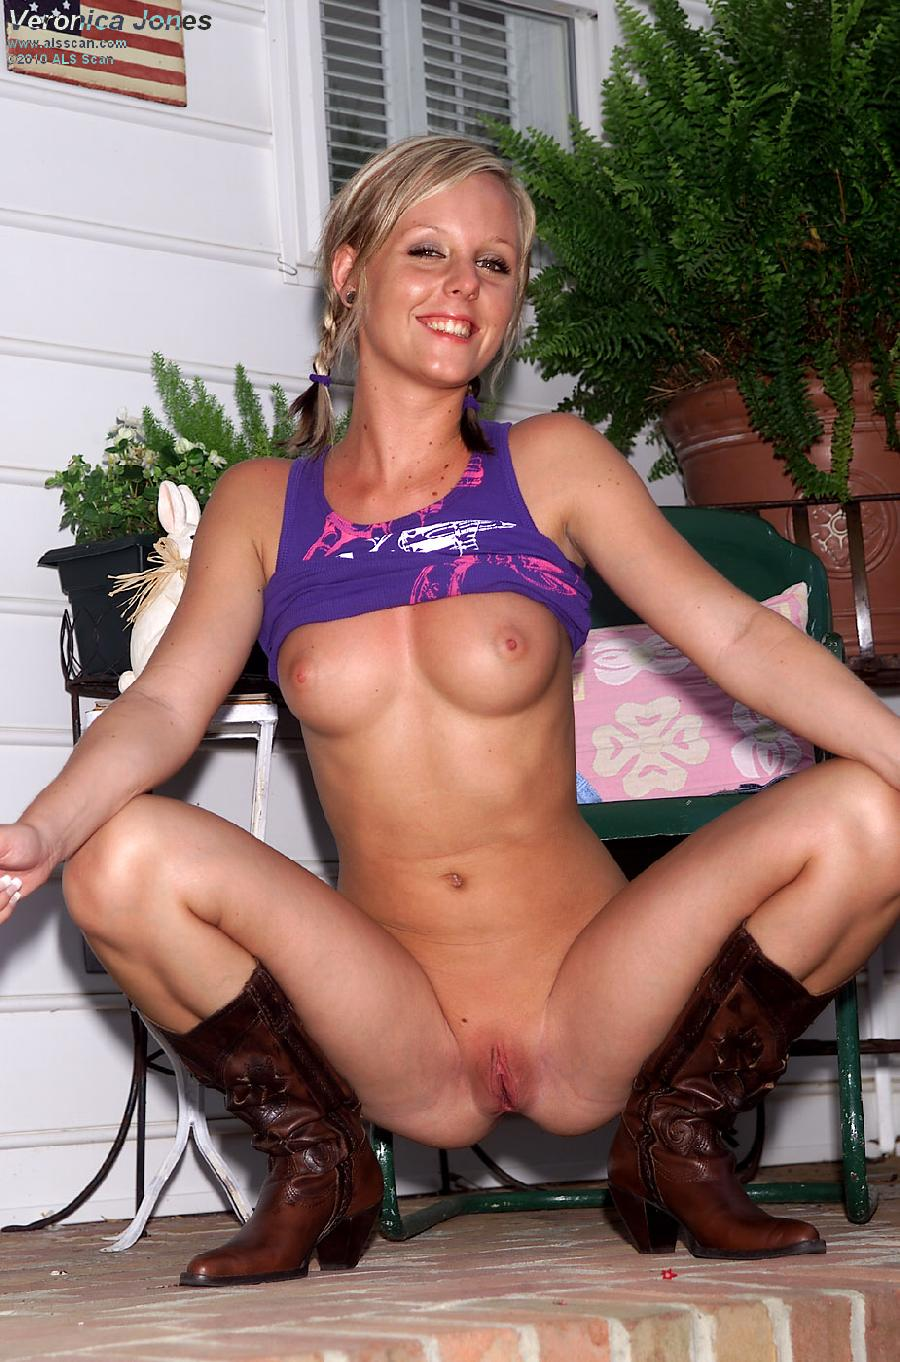 Blonde cowgirl with red wet pussy - Veronica Jones  - 5